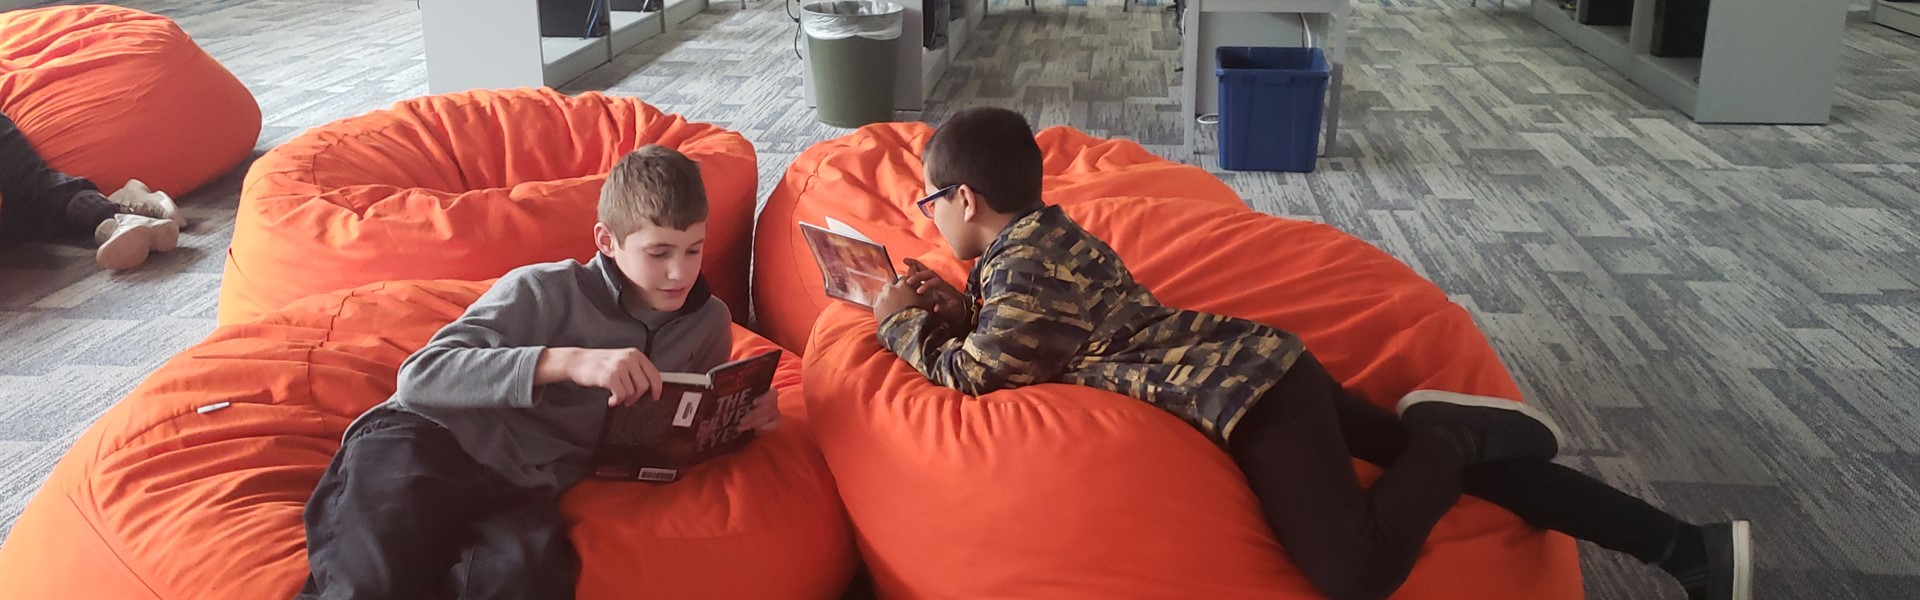 Reading and relaxing on the bean bags.